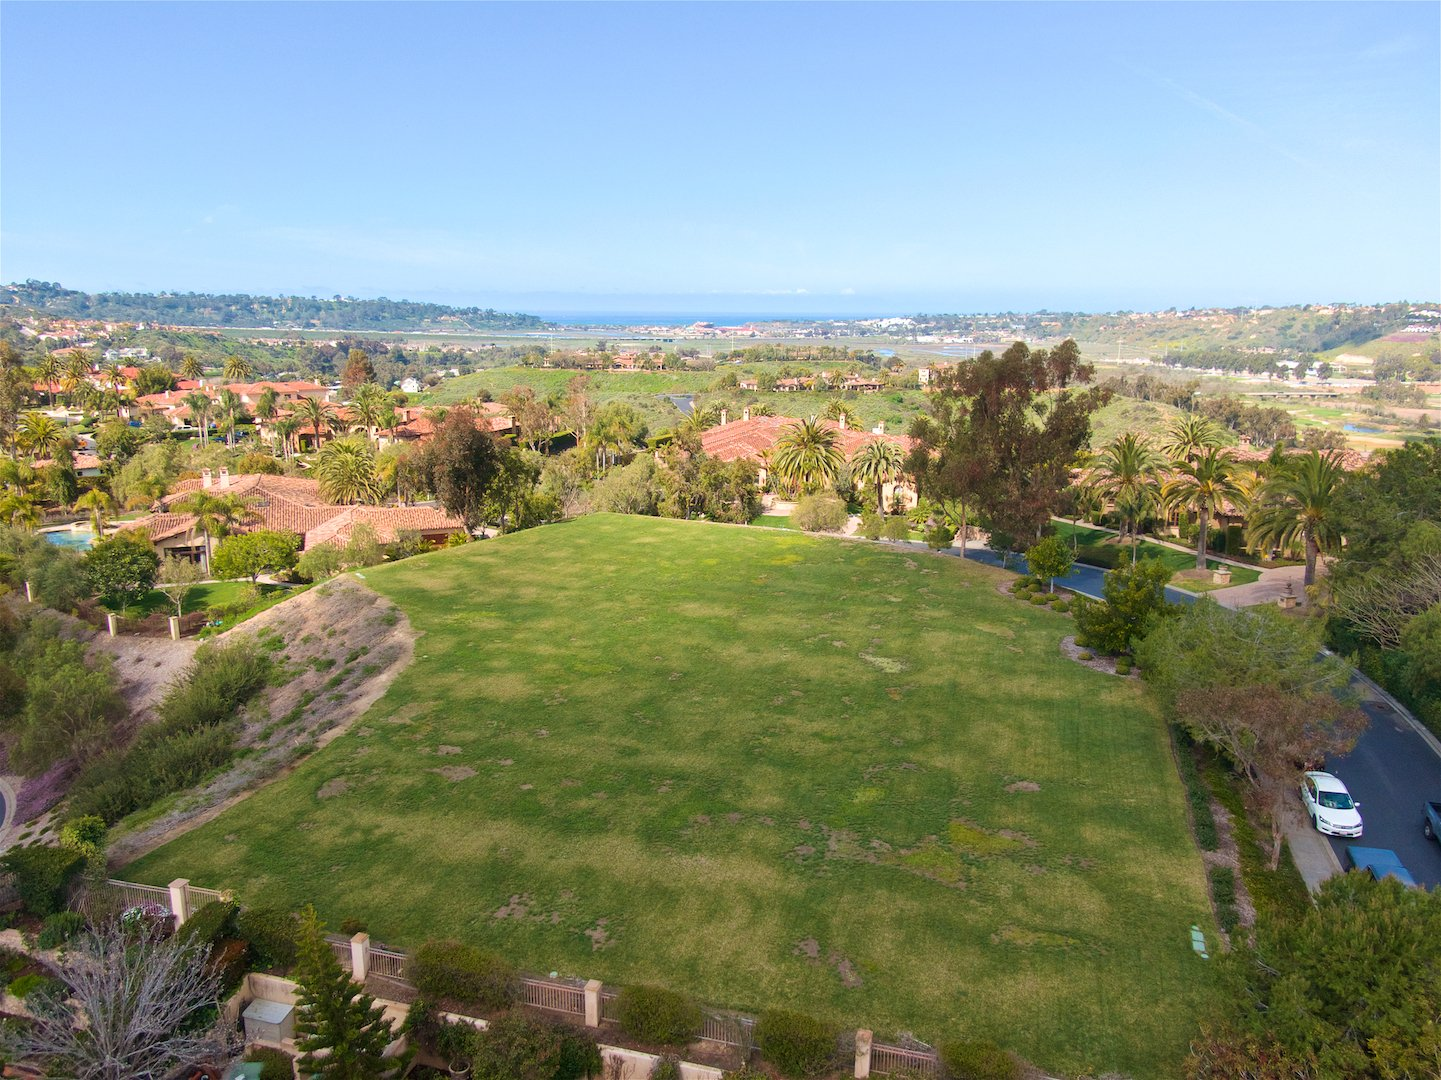 Sold 2019 Represented Buyer & Seller -  San Diego, Ca 92130